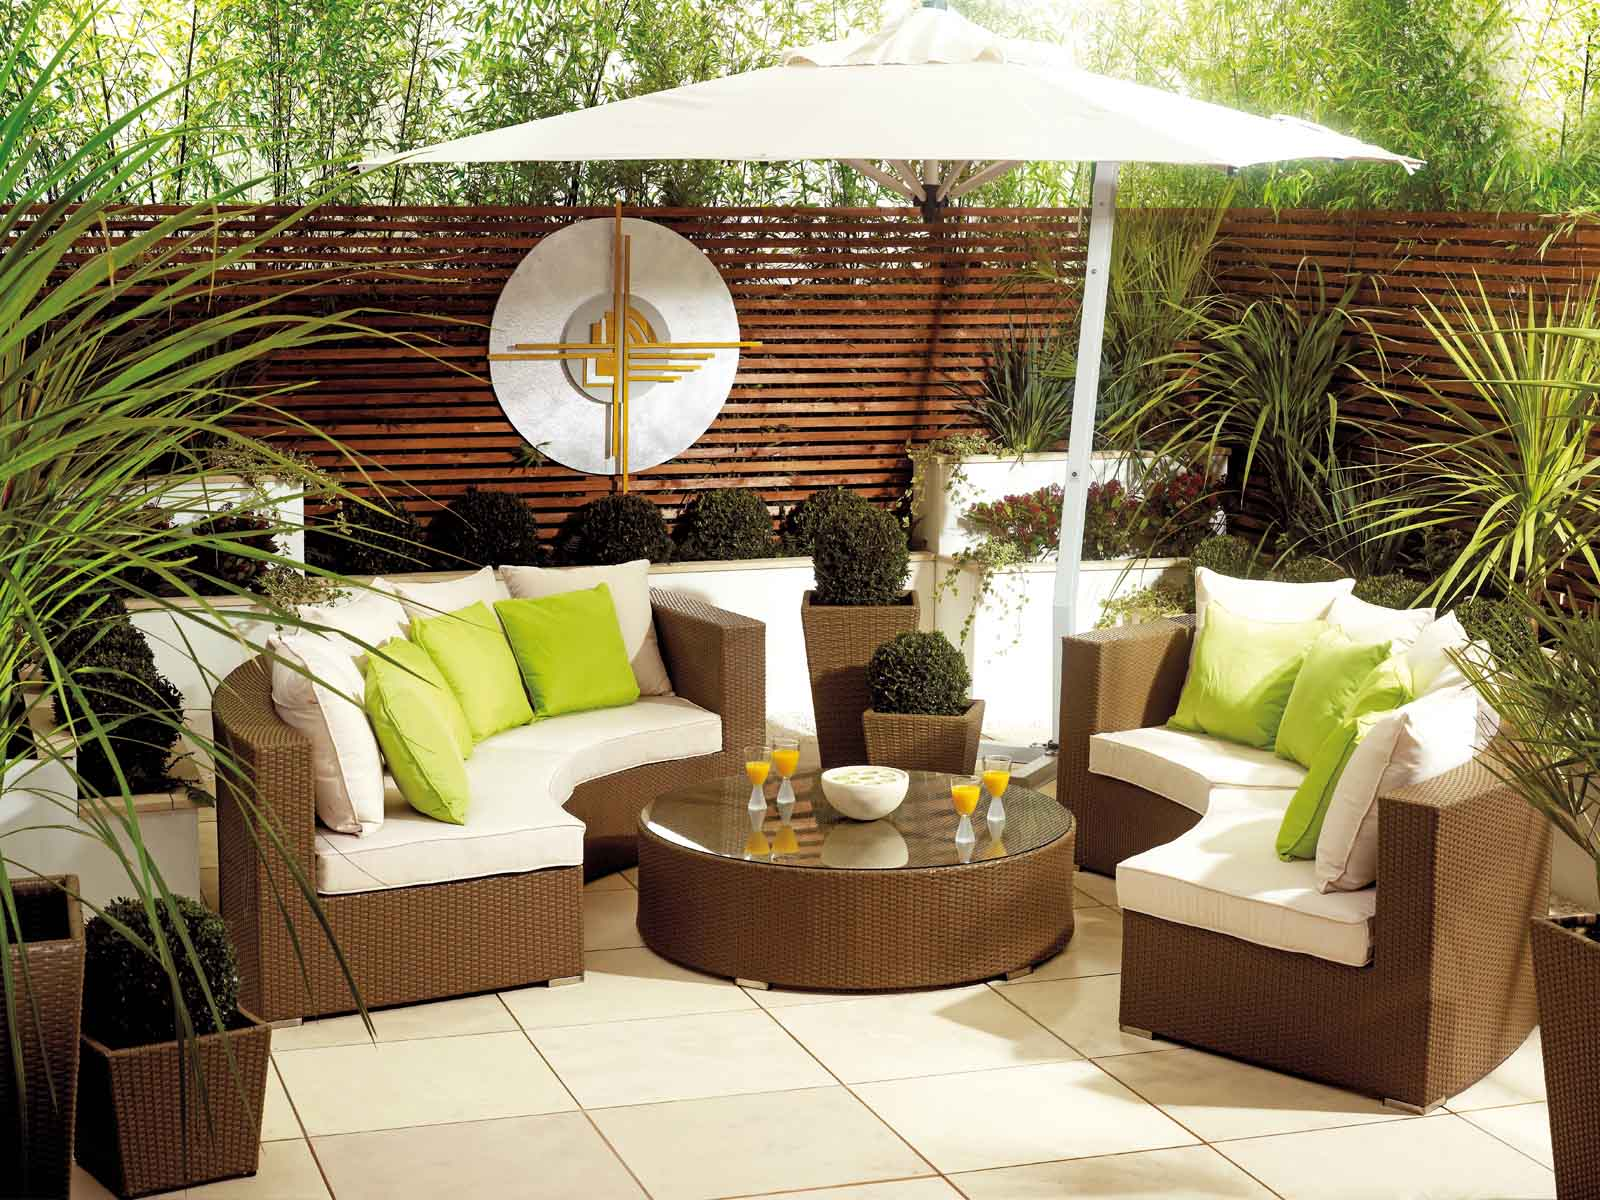 How to properly store and care for your garden furniture